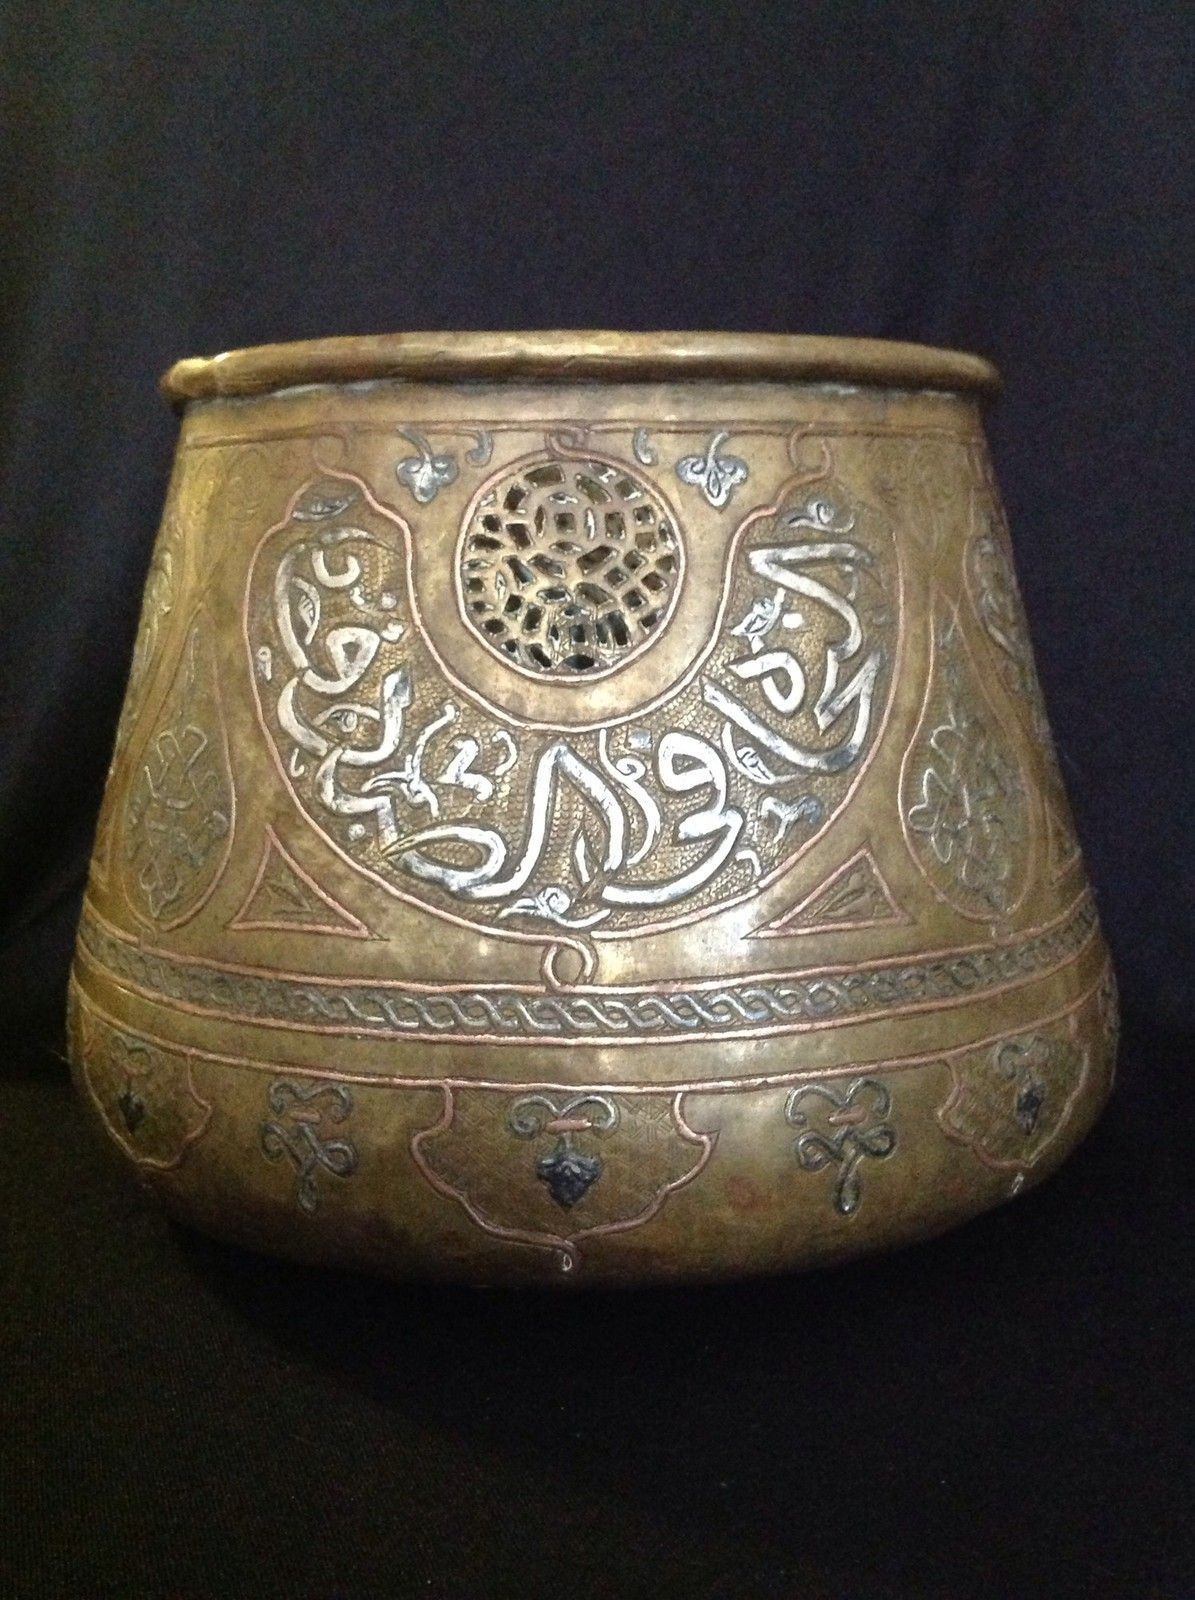 Islamic antique brass bowl inlaid silver with arabic calligraphy islamic antique brass bowl inlaid silver with arabic calligraphyebay reviewsmspy